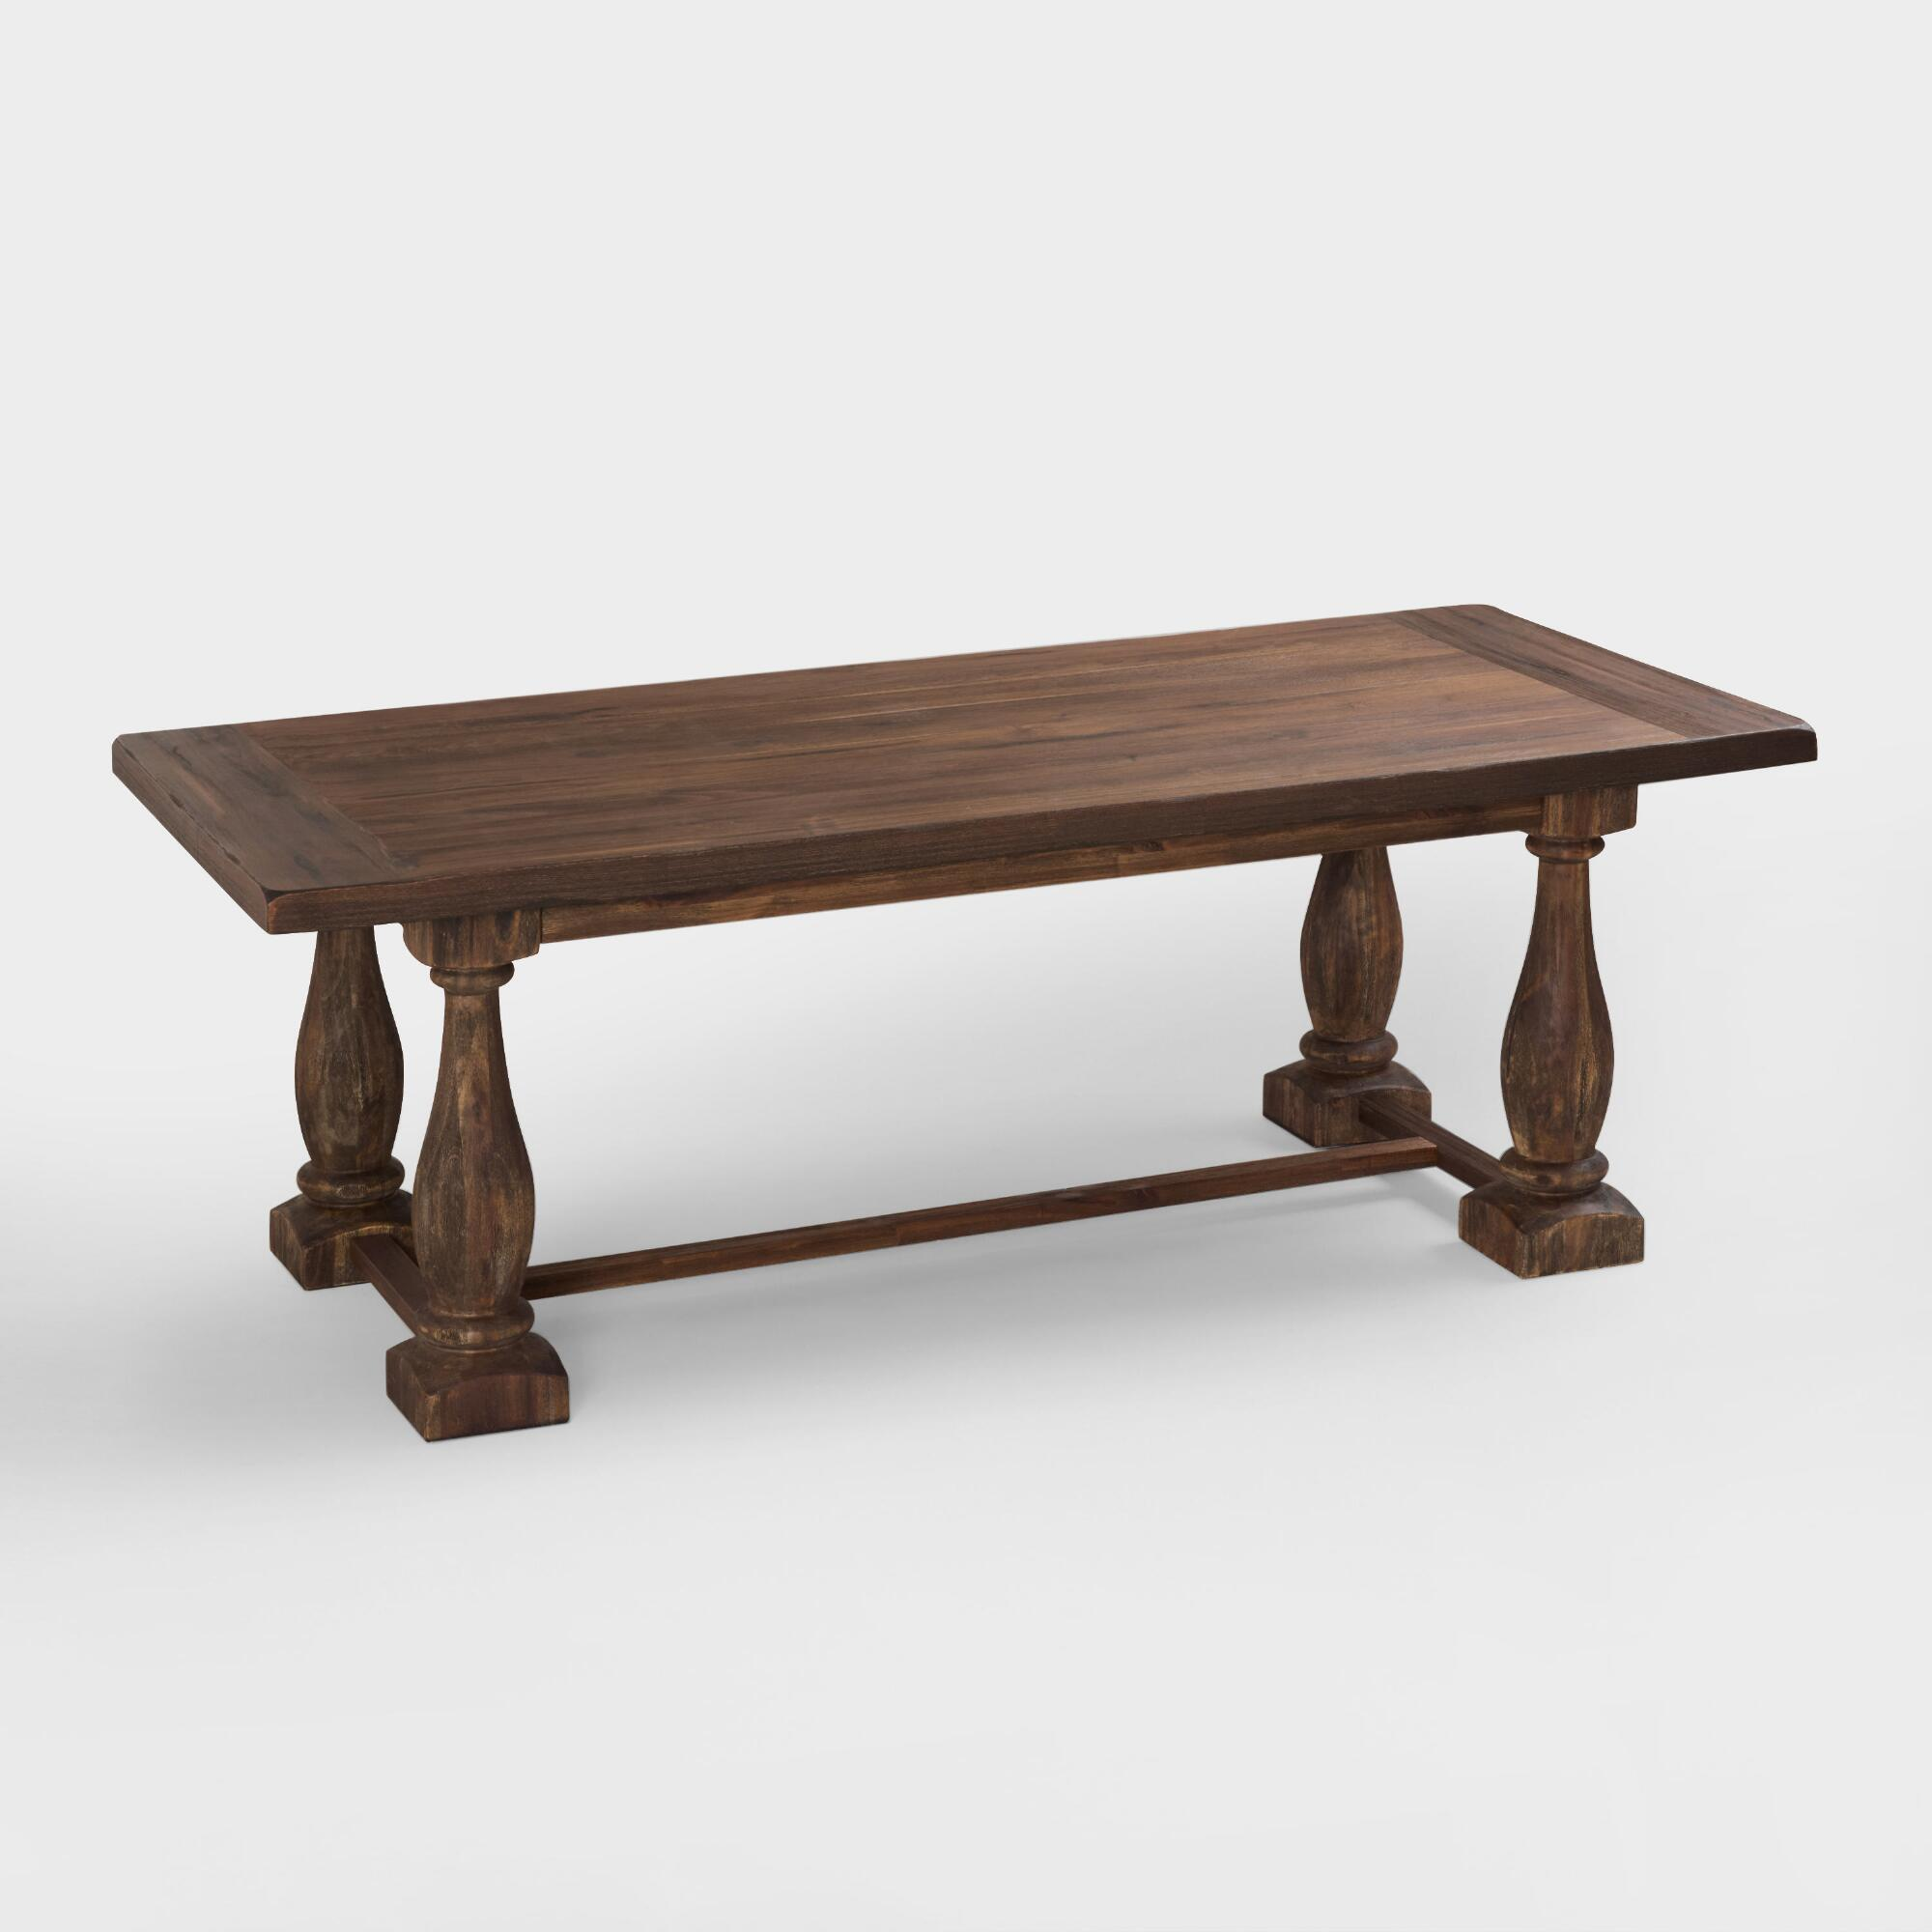 Dining Tables World Market: World Market Farmhouse Furniture Finds